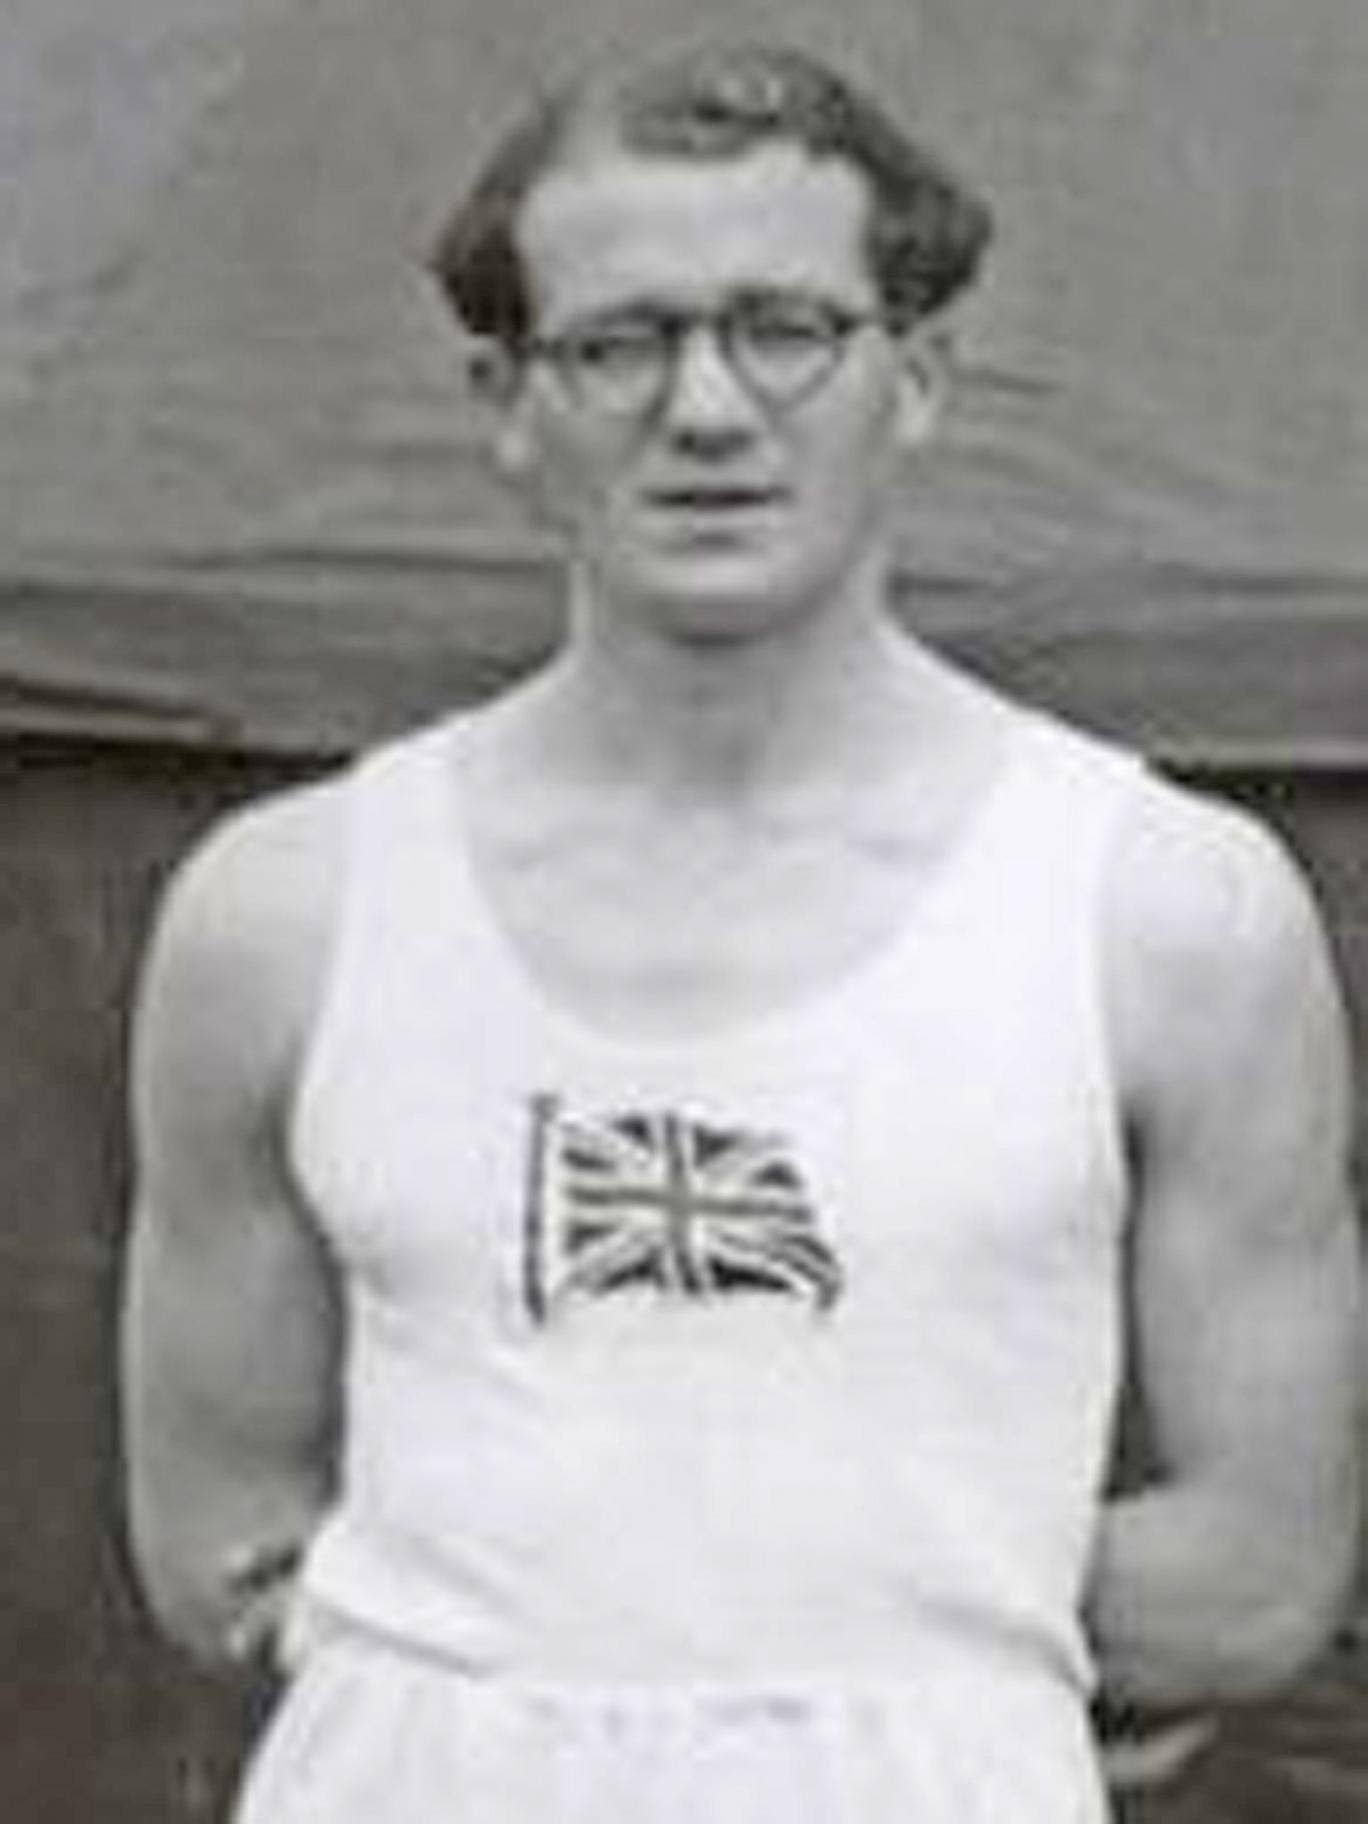 Peter Duckworth, soldier and olympian